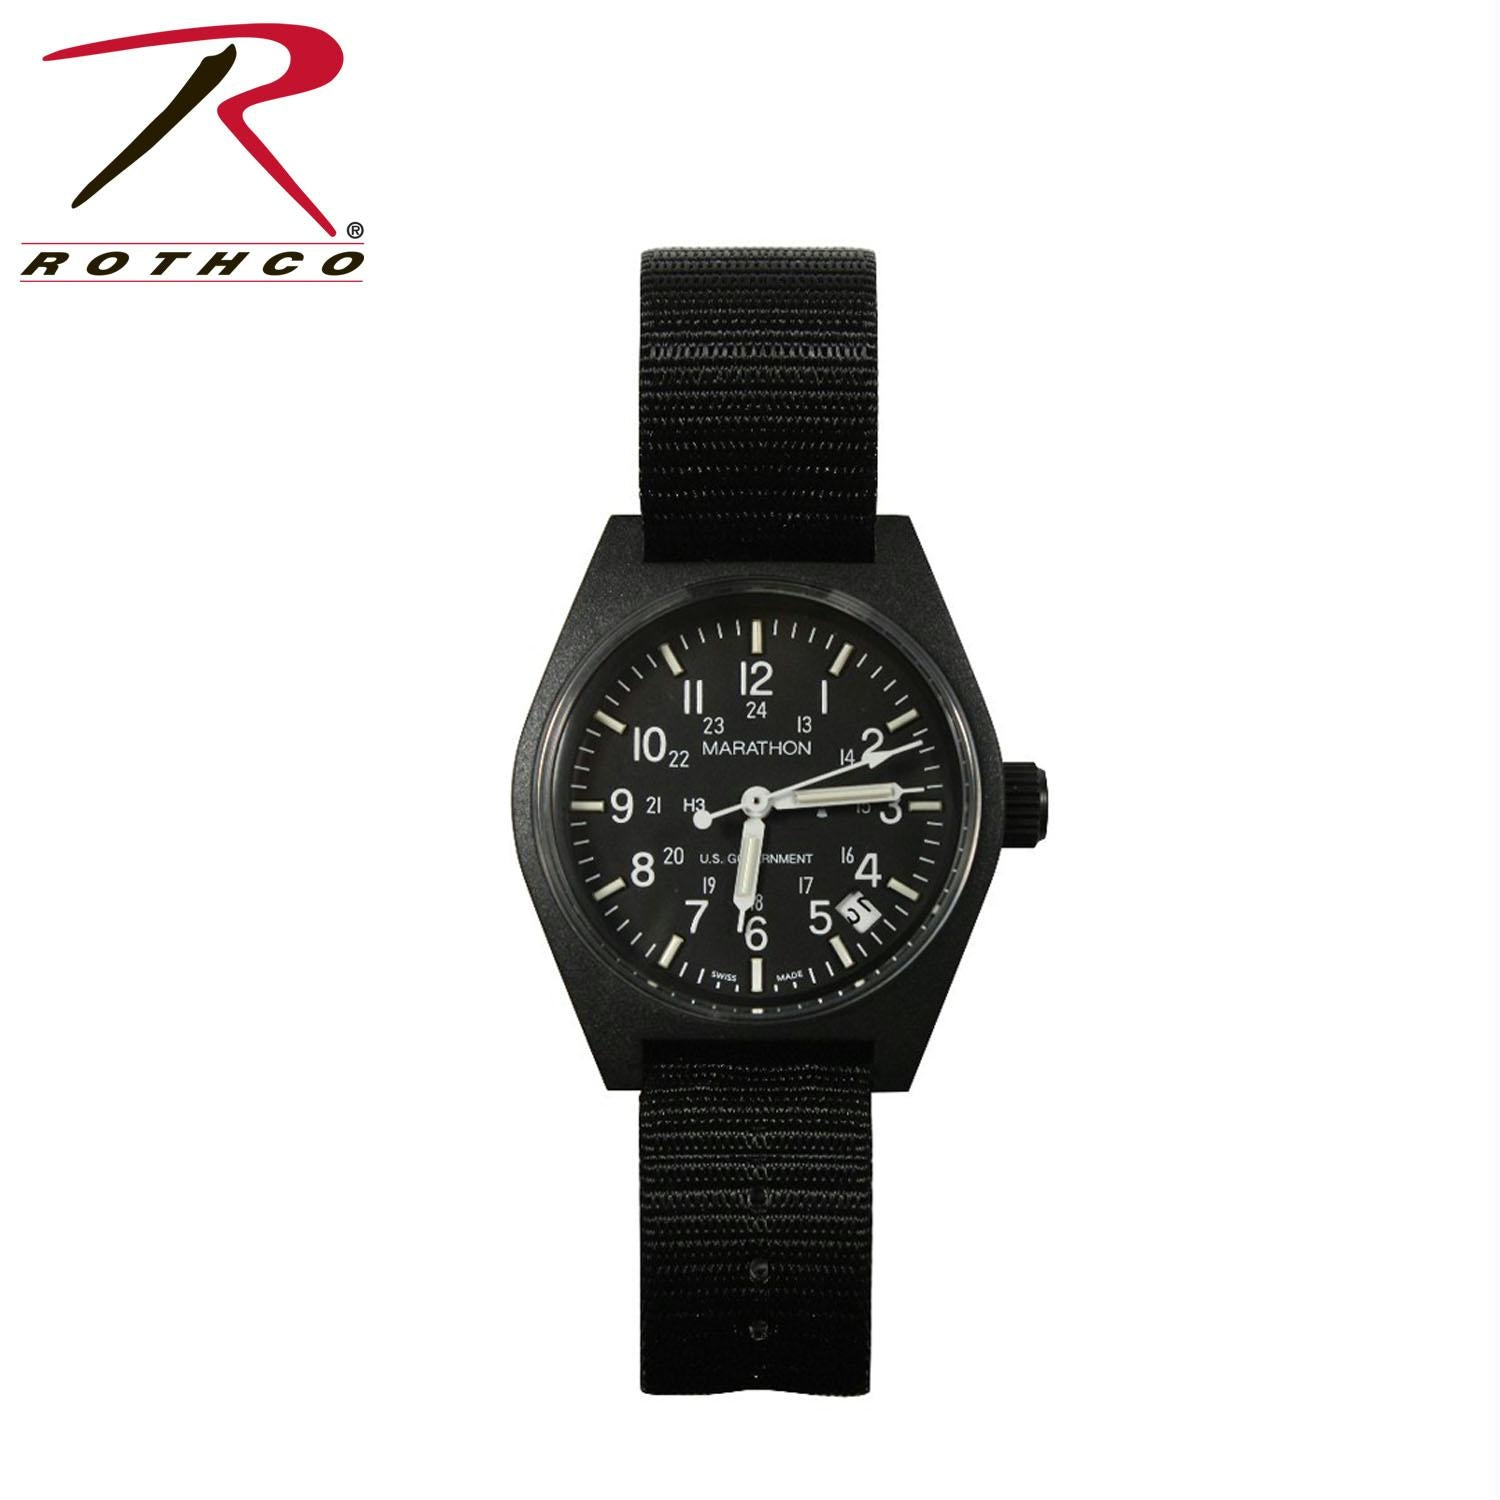 Marathon General Purpose Tritium Field Watch